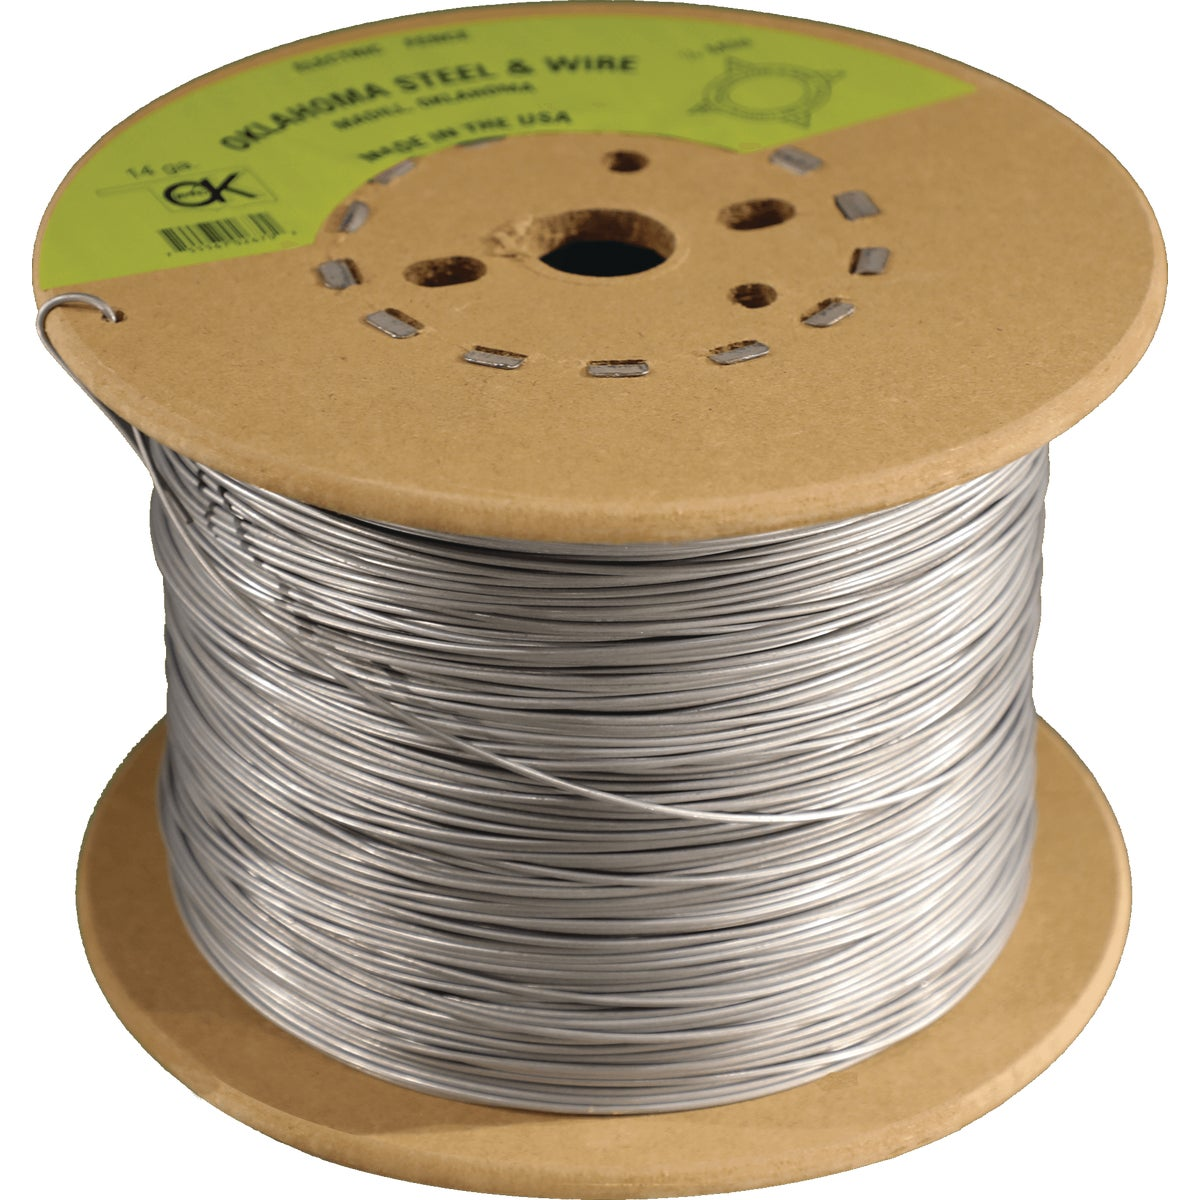 1/2M 17GA ELC FENCE WIRE - 118244 by Bekaert Corp